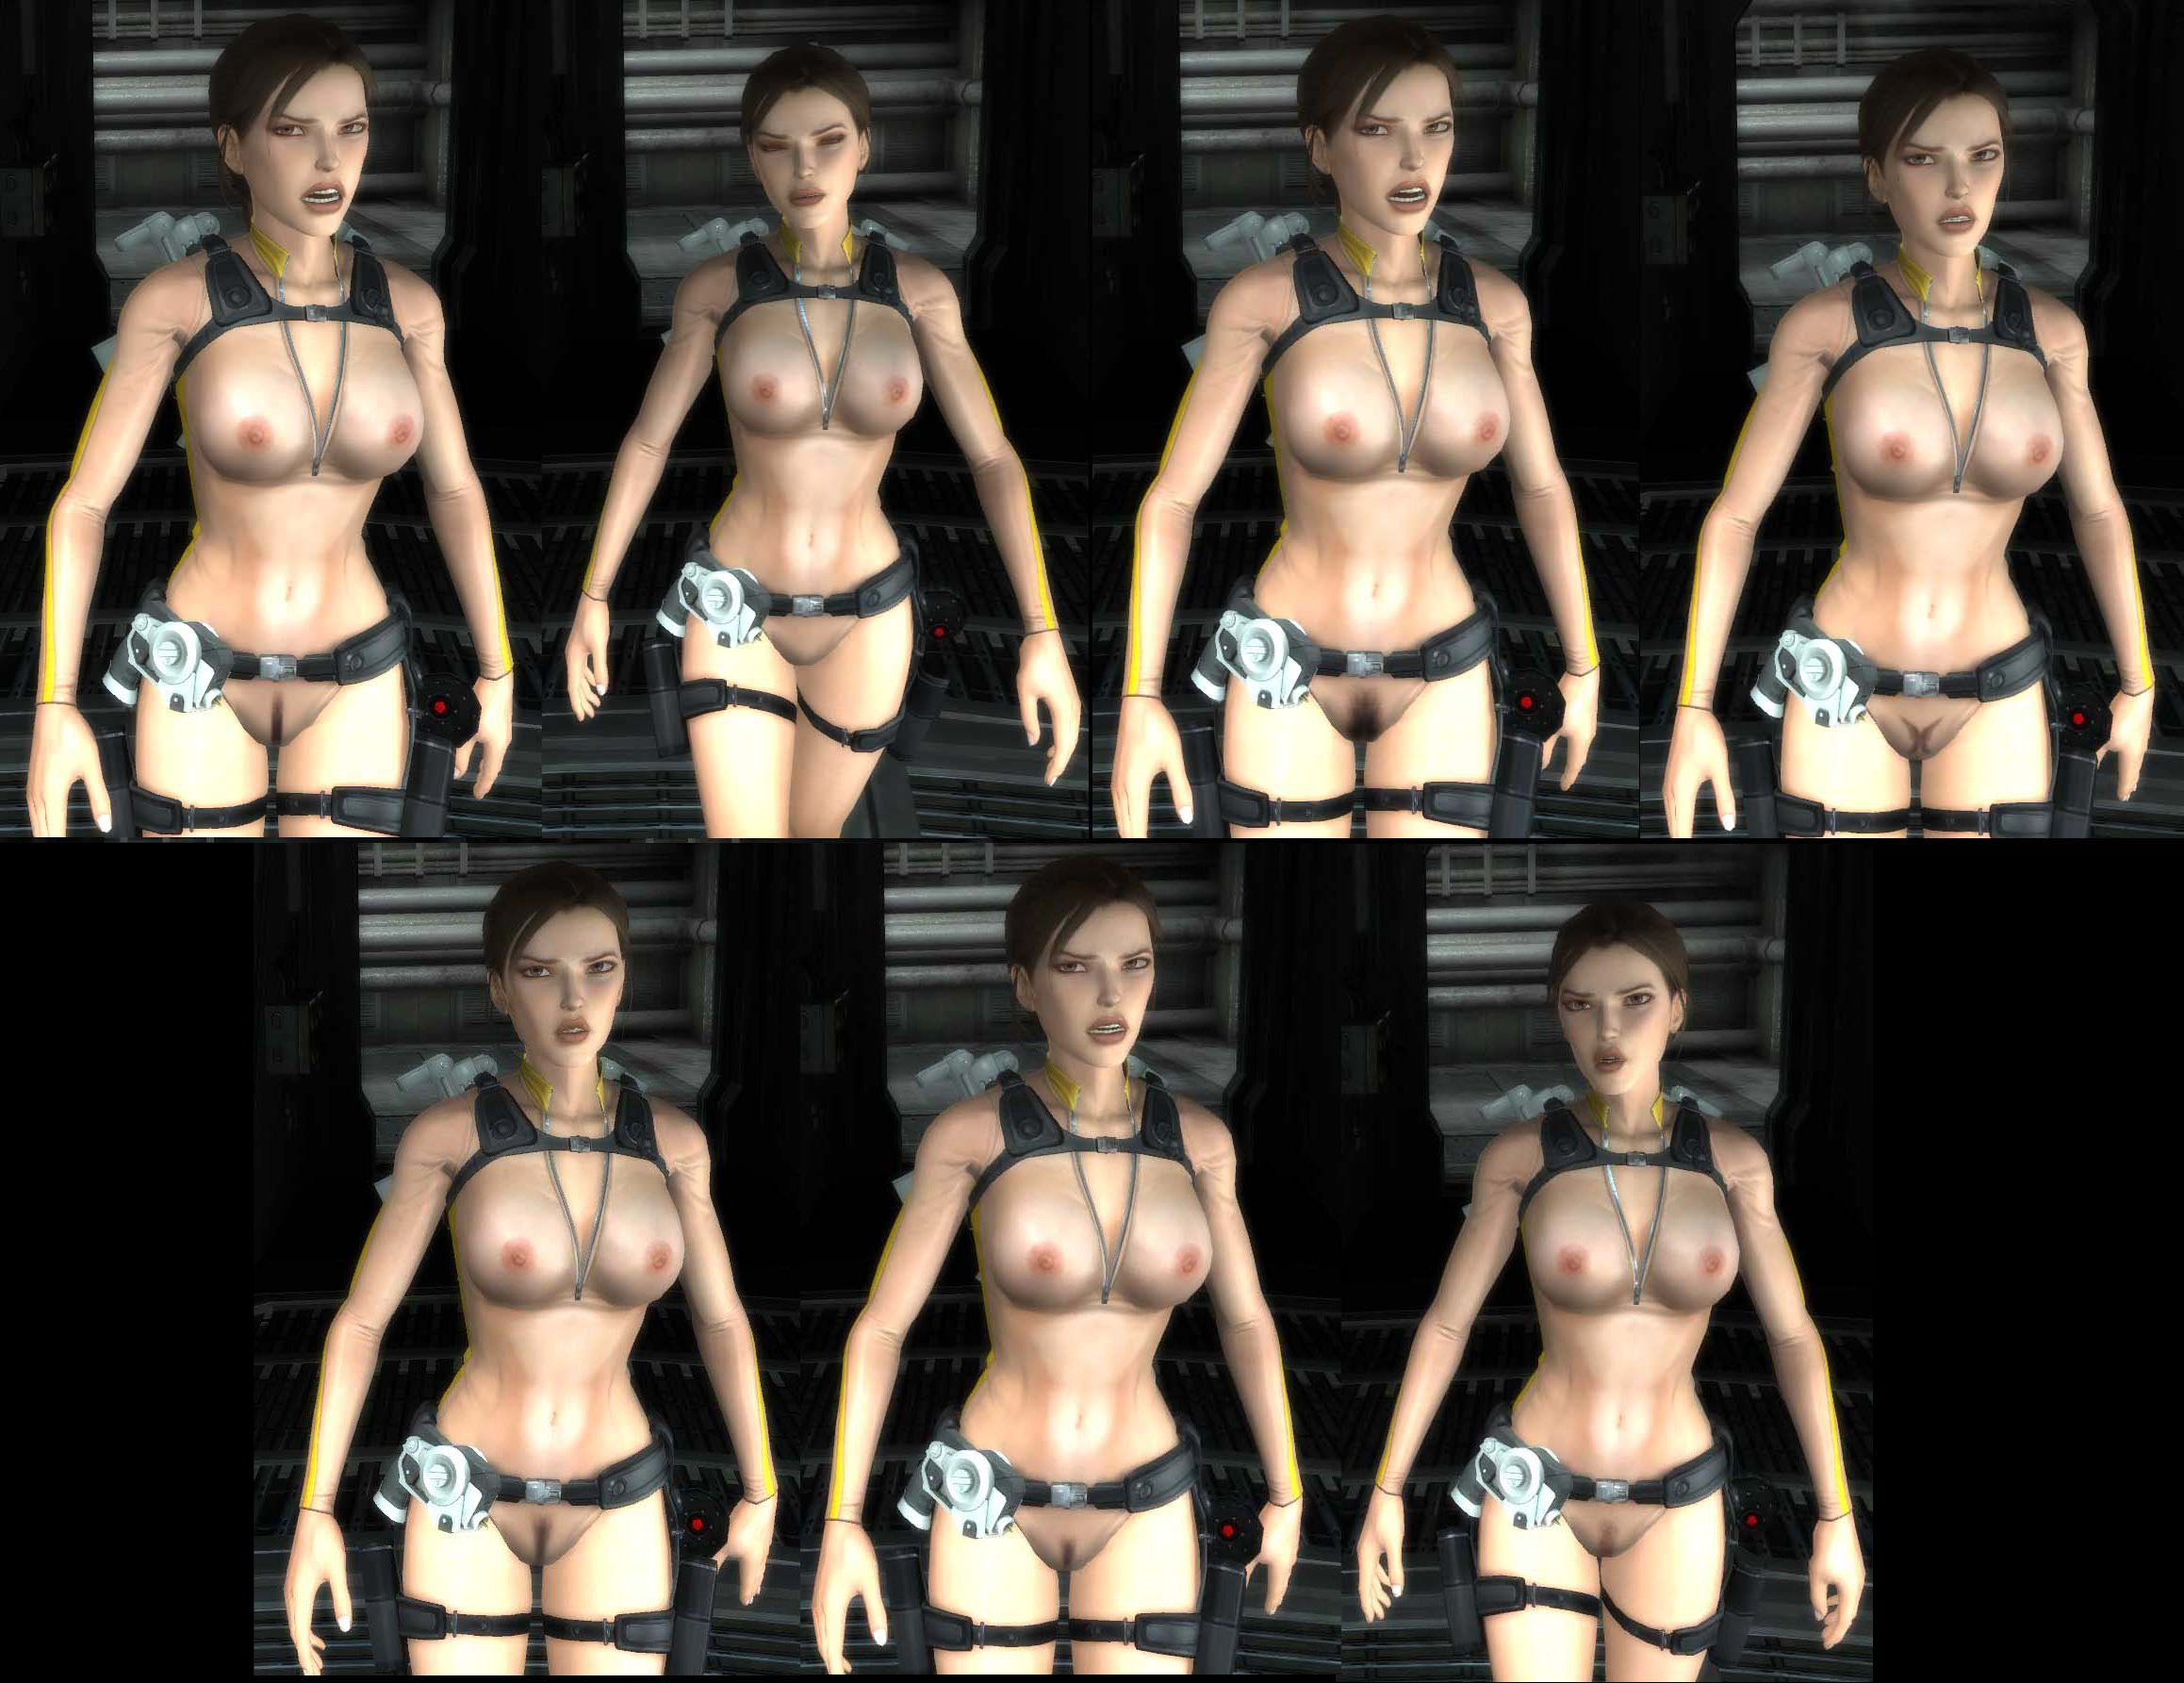 Download tombraider 13 nude patch nudes gallery